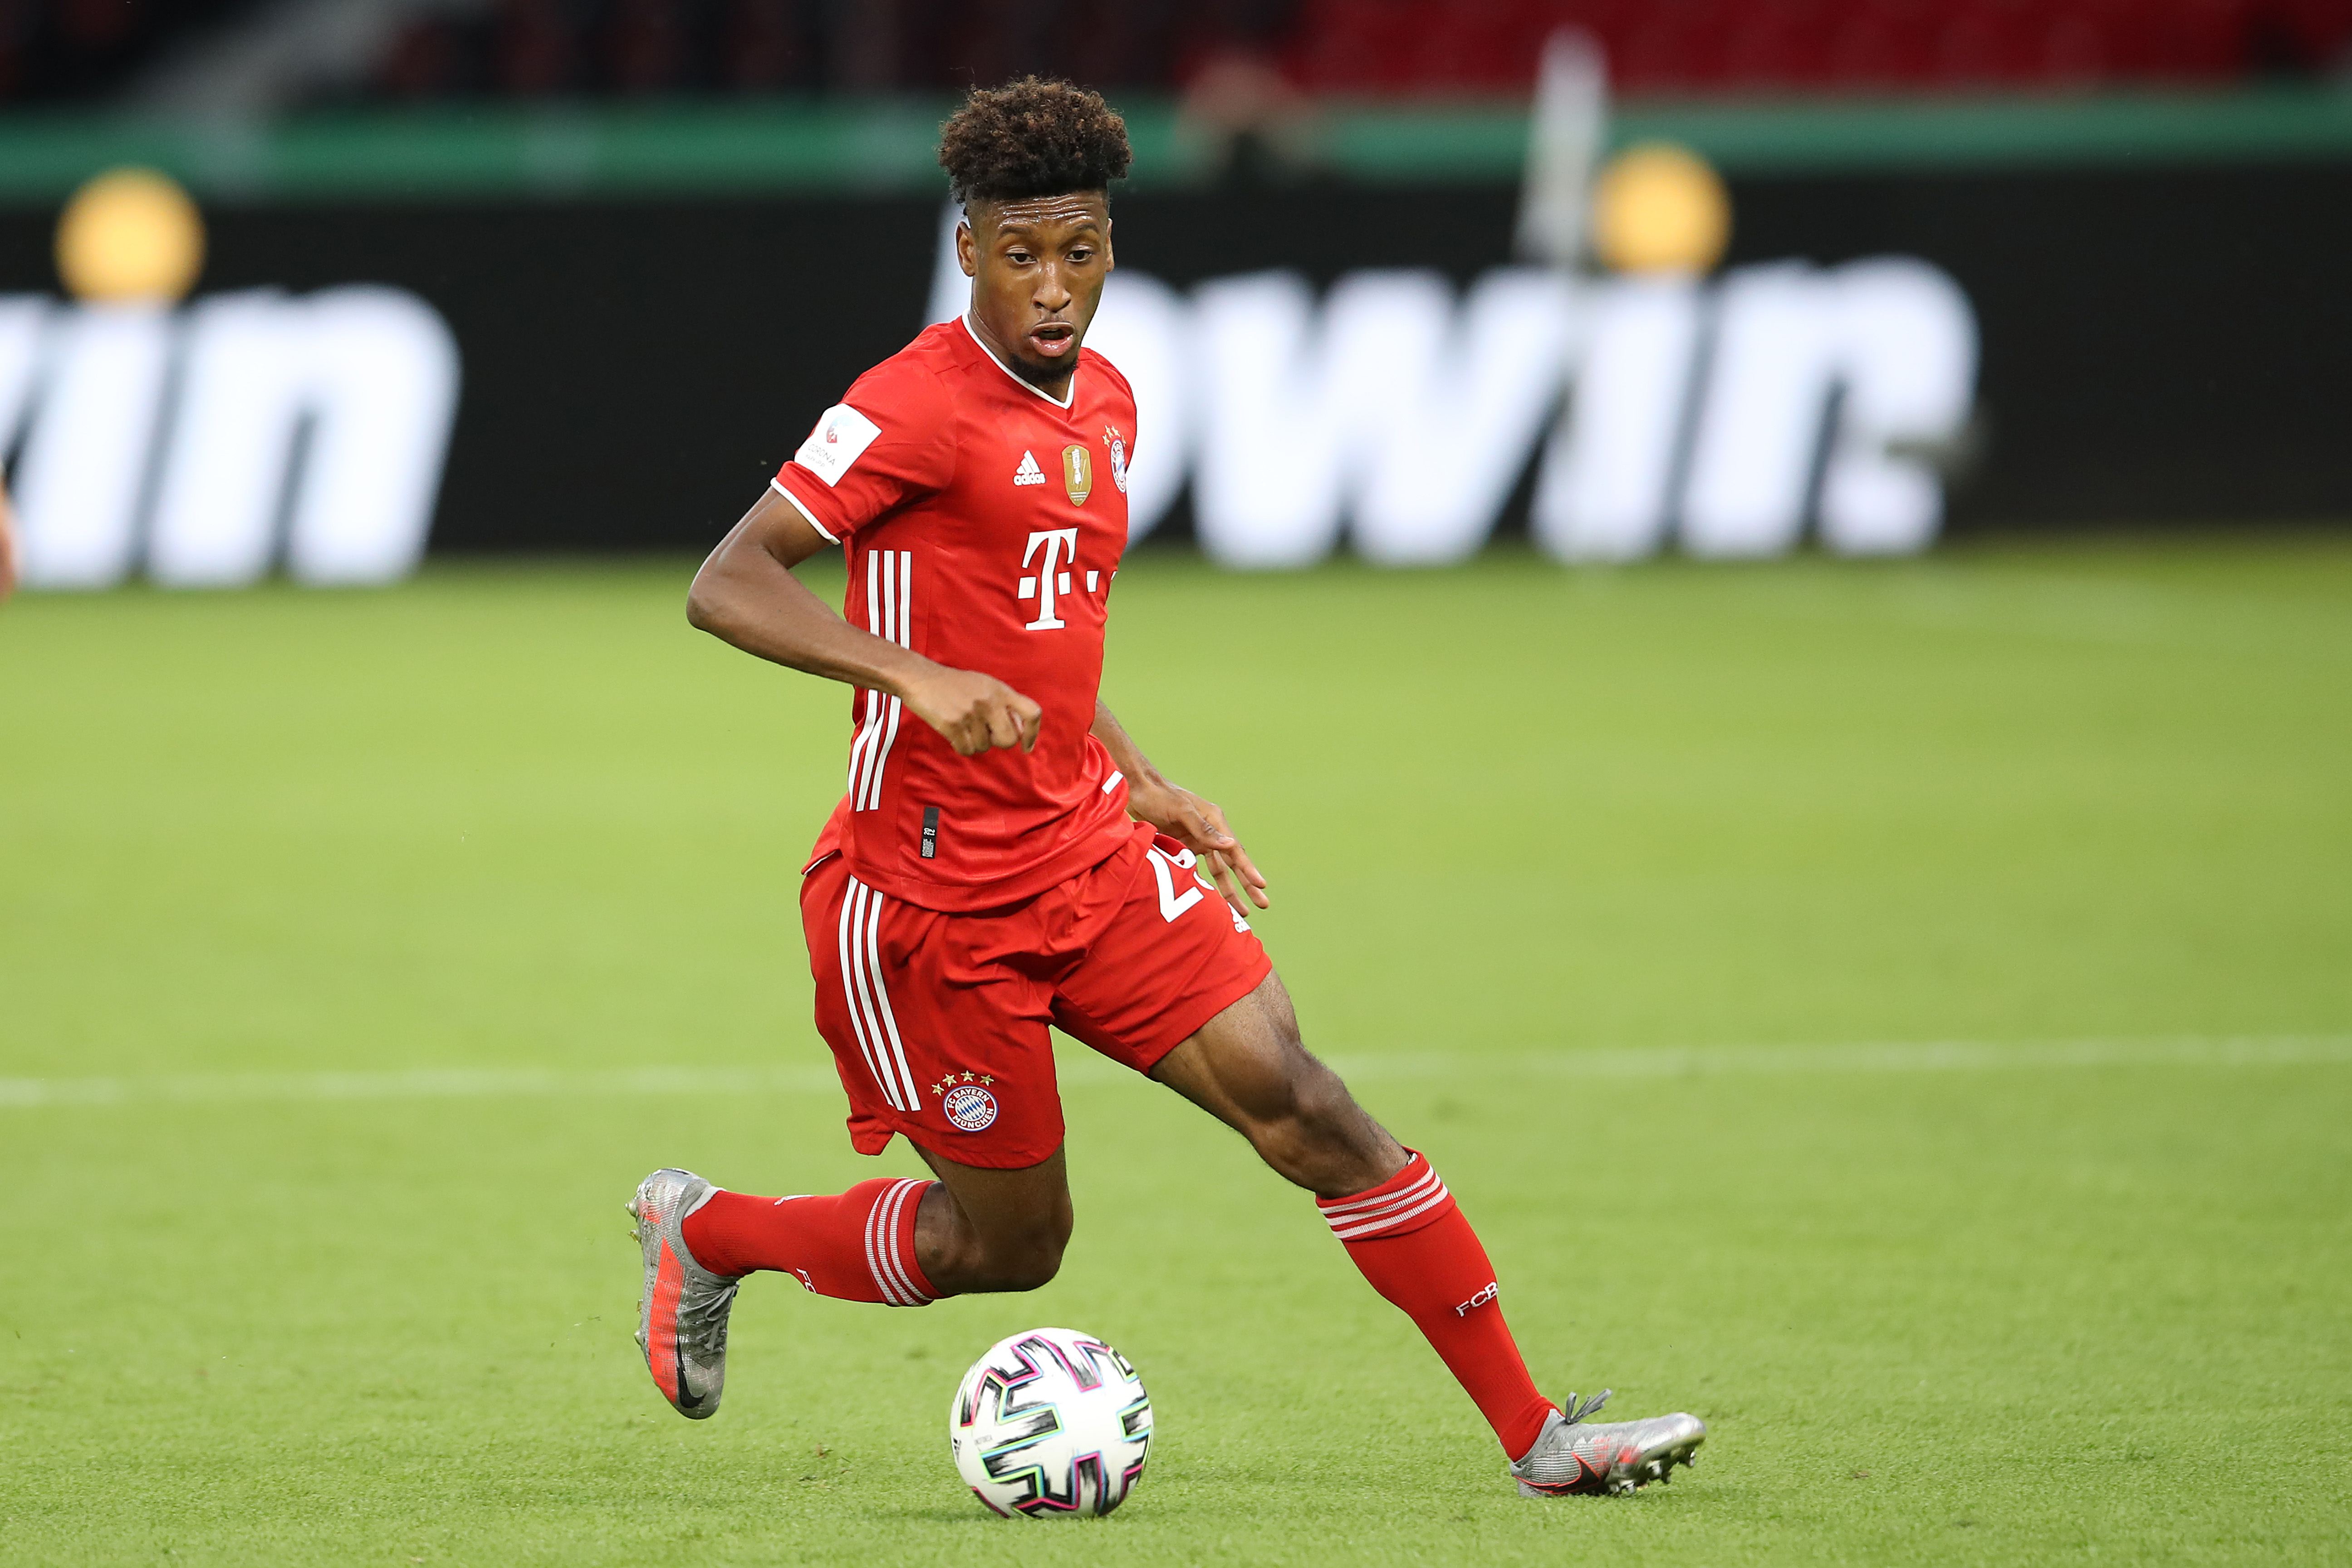 Coman provides update on his future amid Man United interest (Coman is in action in the picture)